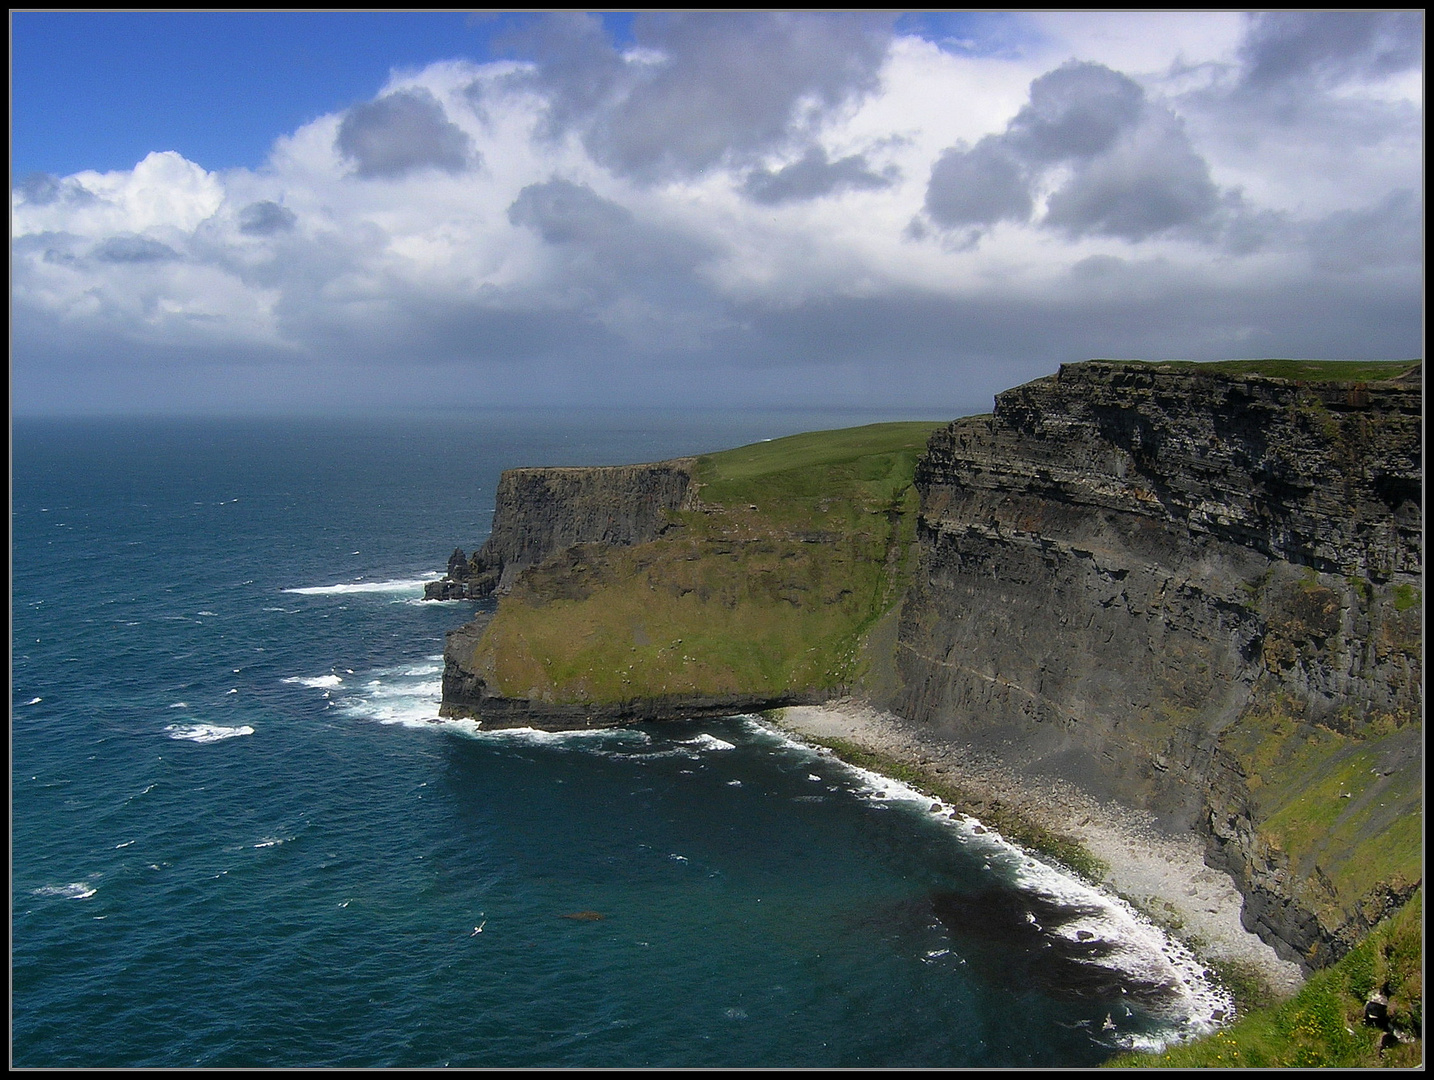 The other side of Cliffs of Moher